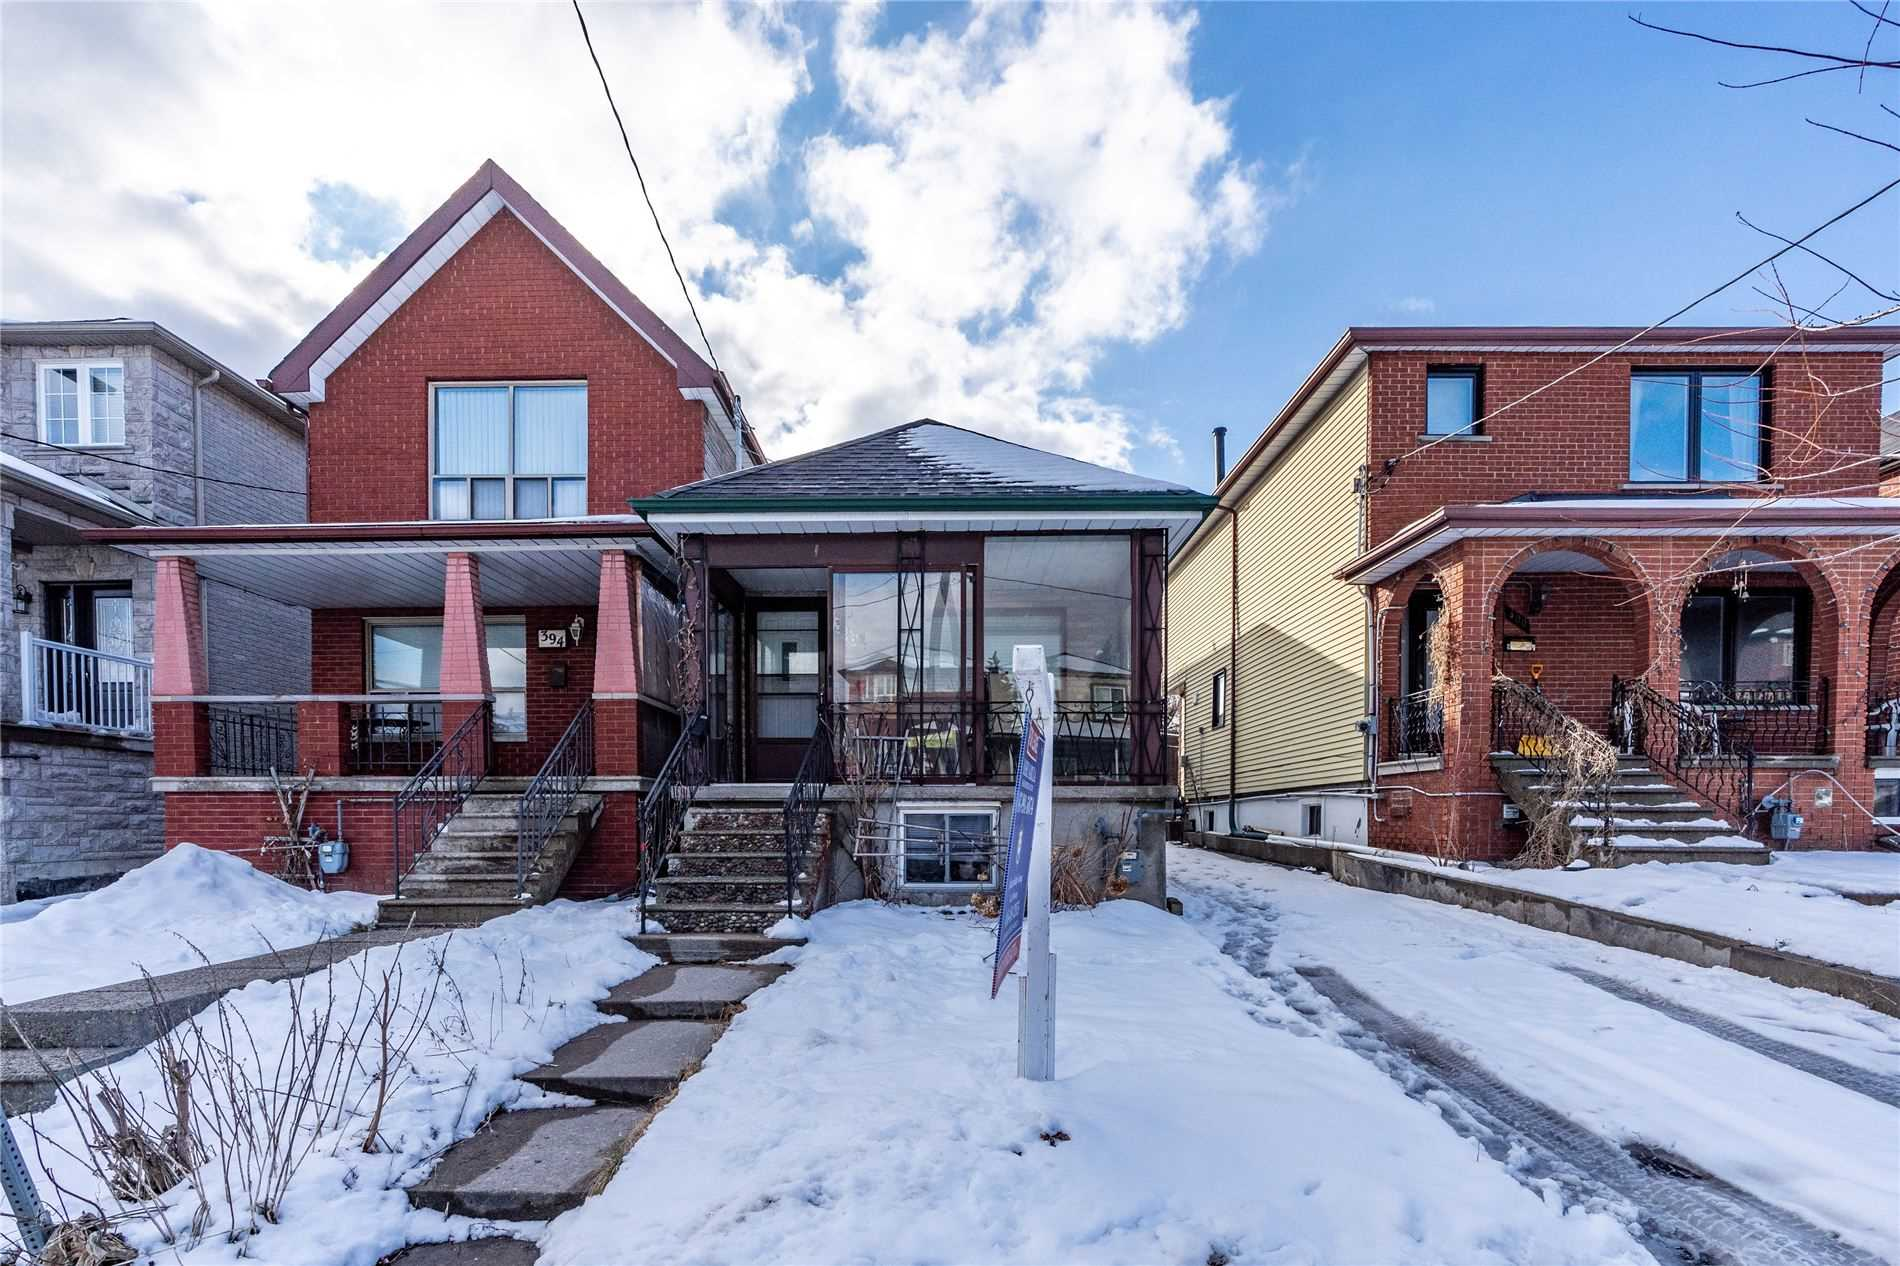 Detached house For Lease In Toronto - 396 Nairn Ave, Toronto, Ontario, Canada M6E4J3 , 2 Bedrooms Bedrooms, ,1 BathroomBathrooms,Detached,For Lease,Bsmnt,Nairn